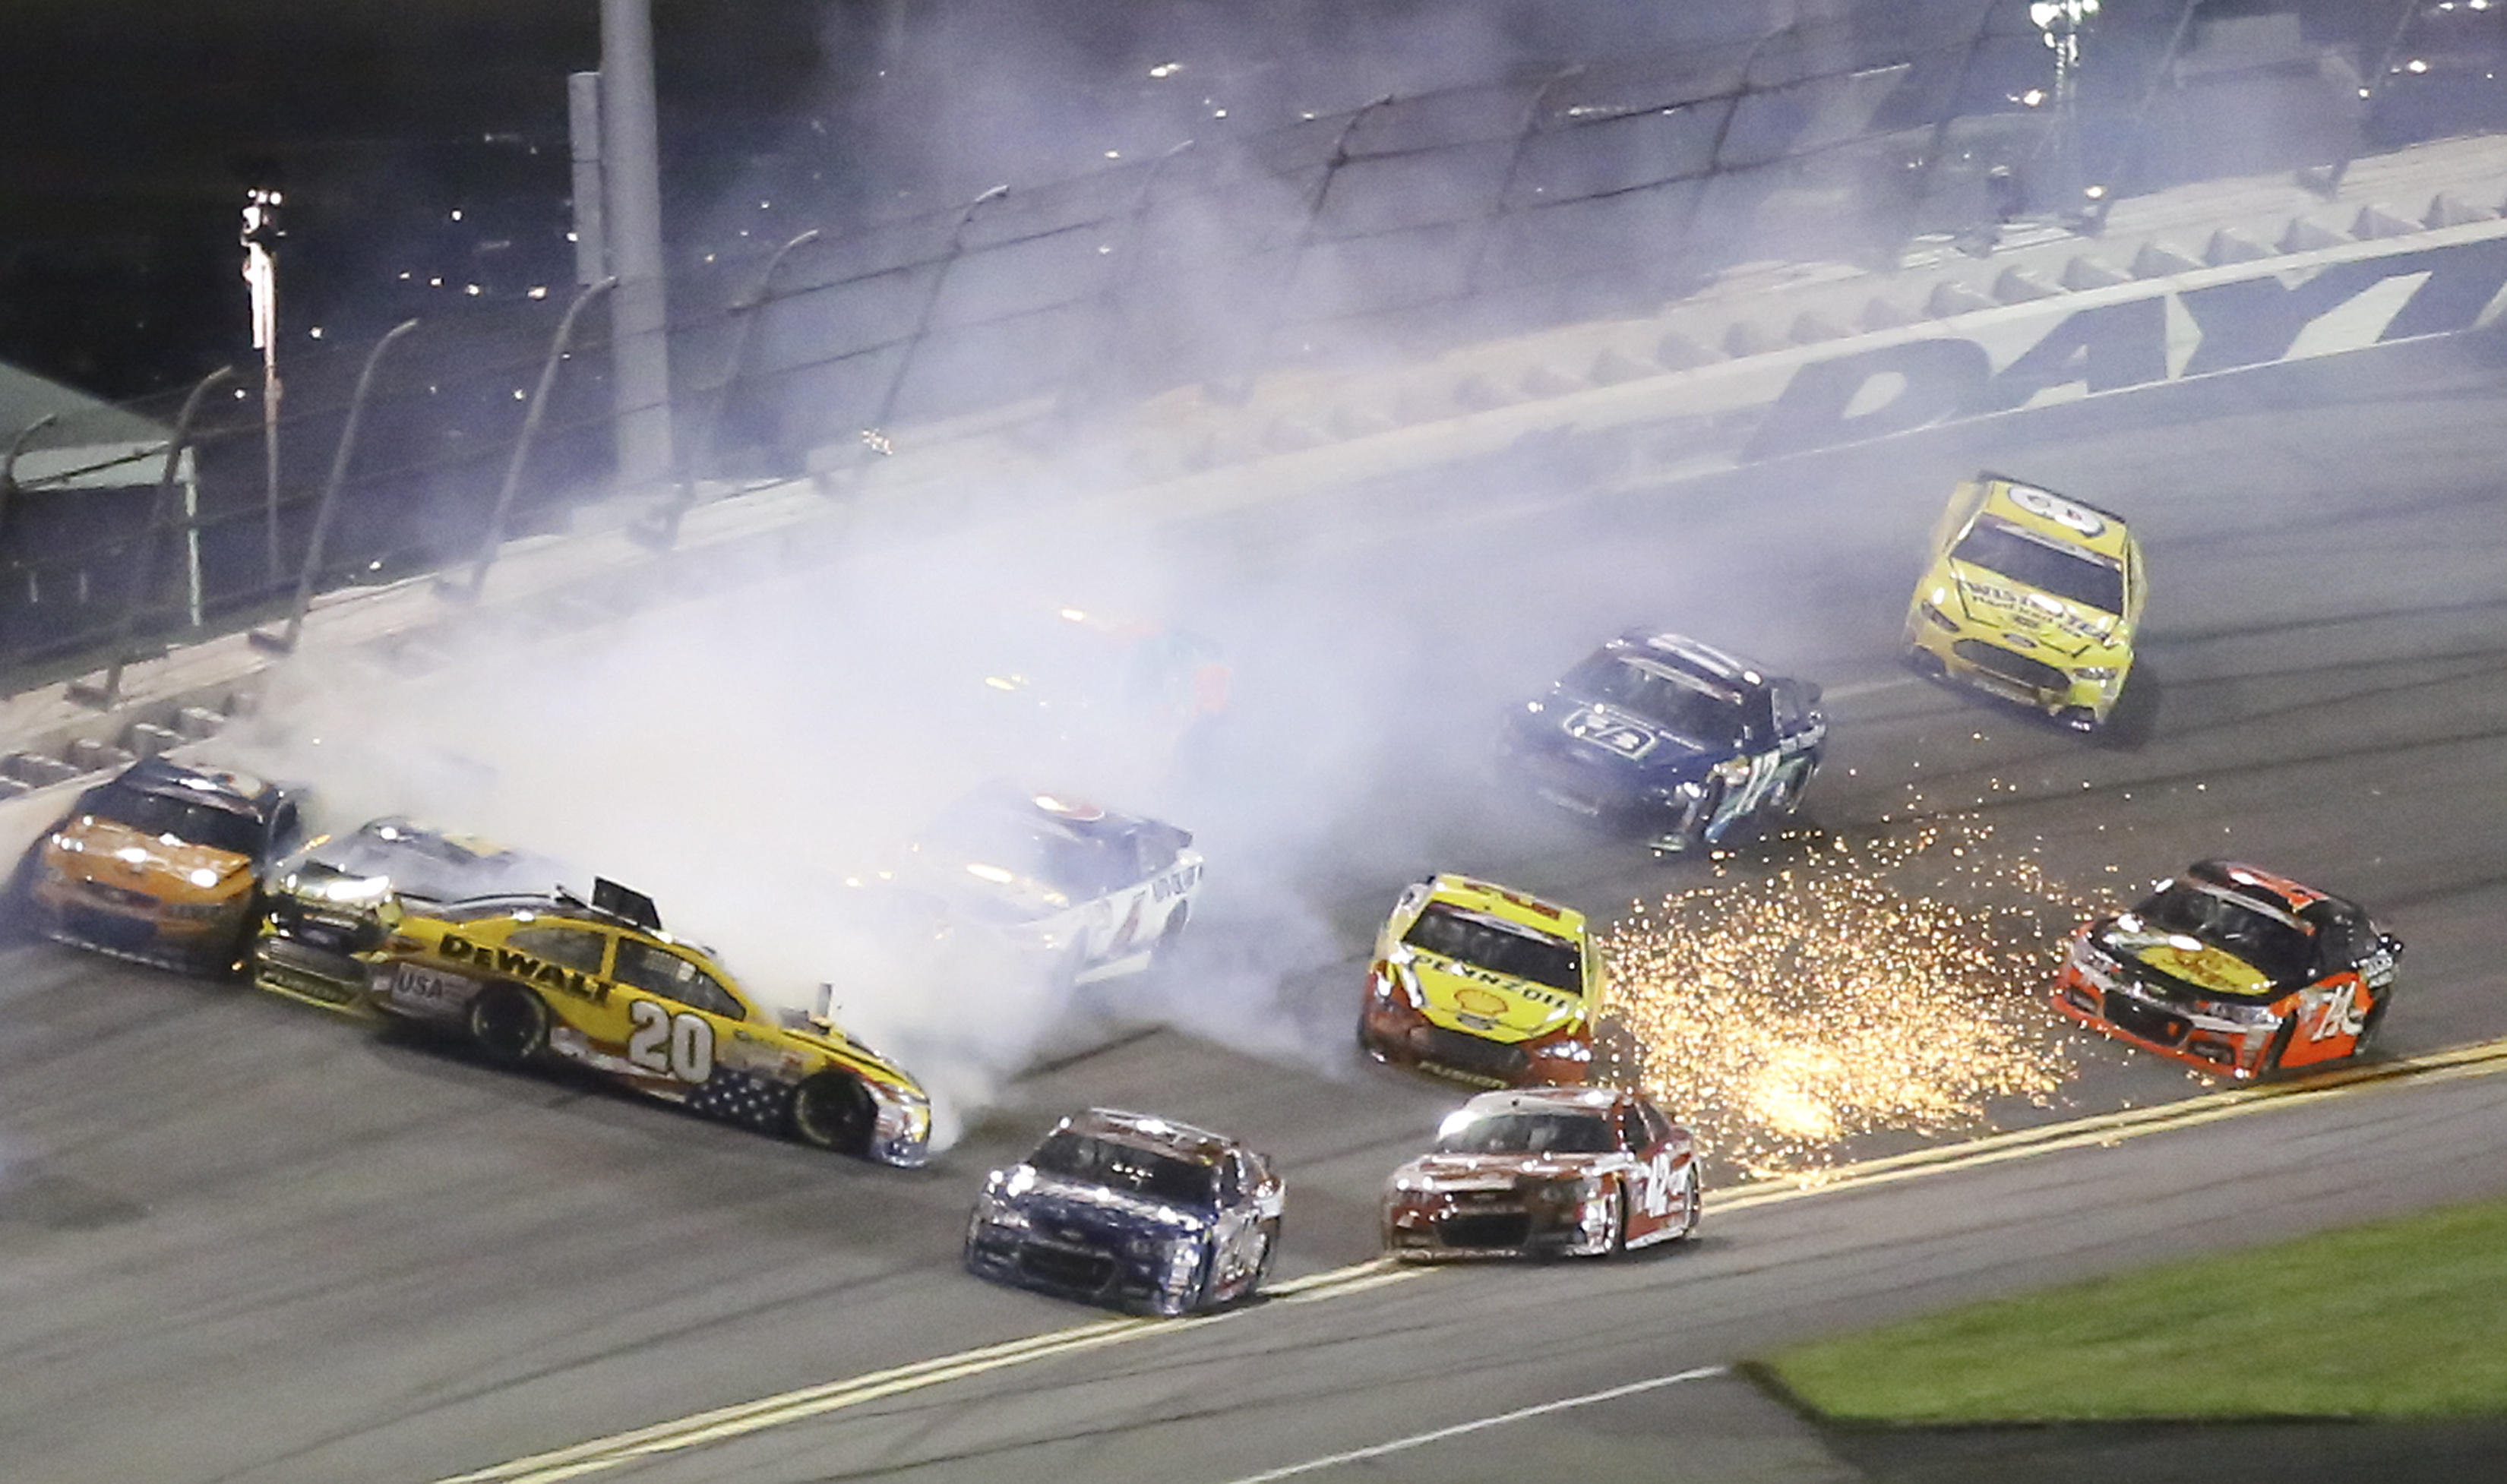 Matt Kenseth (20) gets turned sideways as he is involved in a multi-car crash including Kevin Harvick (4) and Joey Logano (22) coming out of turn 4 during a NASCAR Sprint Cup series auto race at Daytona International Speedway, Monday, July 6, 2015, in Day